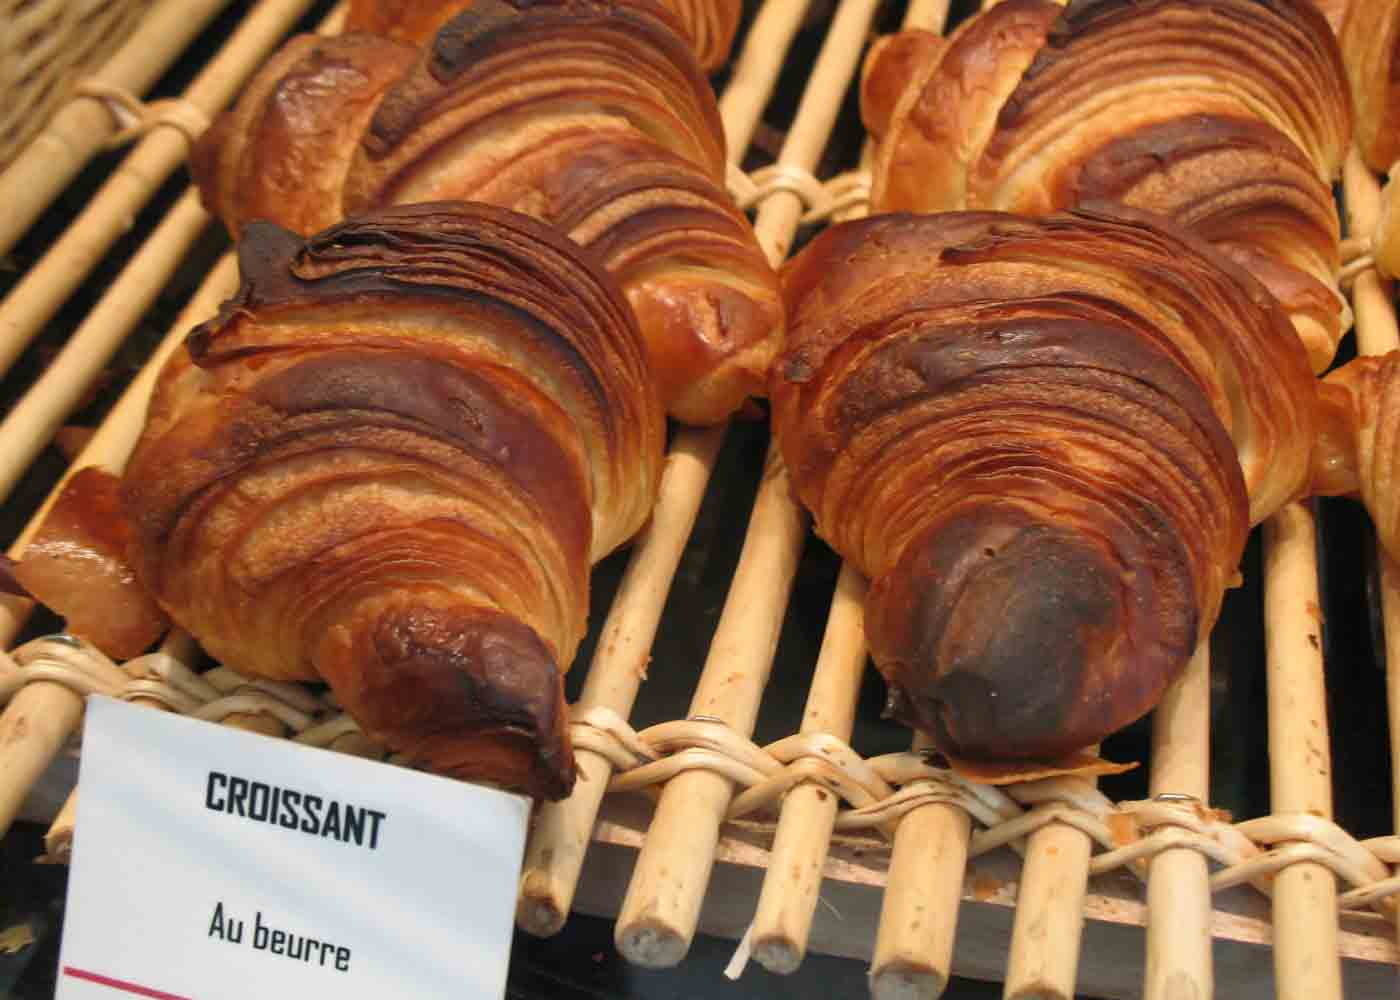 If you leave near a quality bakery or are a baker yourself, breakfast goodies are often a welcome treat.